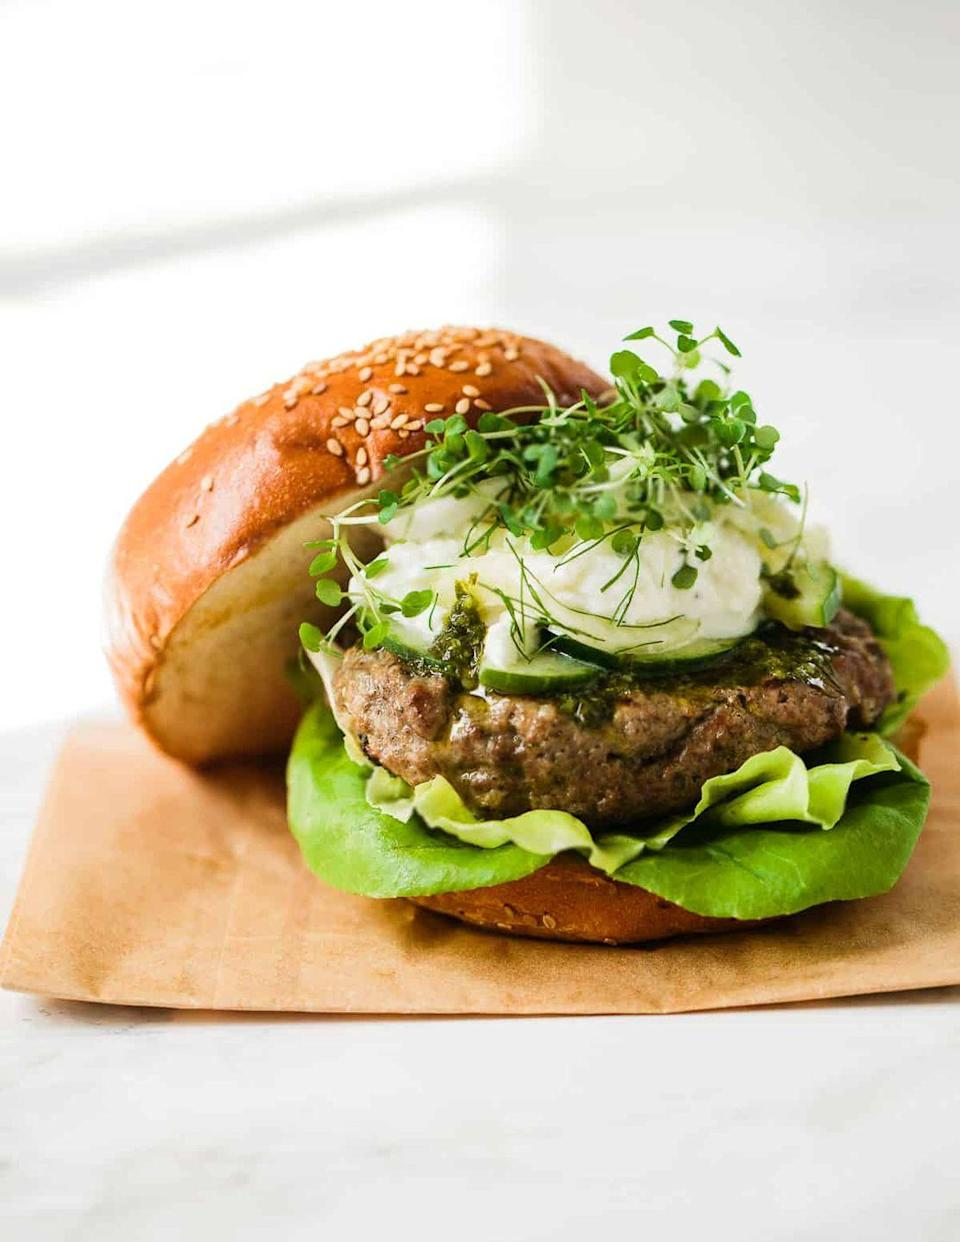 """<p>These lamb burgers are super juicy and flavourful, and they go great with the feta-yogurt sauce and fennel slaw.</p><p>Get the<a href=""""https://familystylefood.com/lamb-burgers-with-shawarma-spice/"""" rel=""""nofollow noopener"""" target=""""_blank"""" data-ylk=""""slk:Spiced Lamb Burgers With Fennel Slaw"""" class=""""link rapid-noclick-resp""""> Spiced Lamb Burgers With Fennel Slaw</a> recipe.</p><p>Recipe from <a href=""""https://familystylefood.com/"""" rel=""""nofollow noopener"""" target=""""_blank"""" data-ylk=""""slk:Family Style Food."""" class=""""link rapid-noclick-resp"""">Family Style Food.</a></p>"""